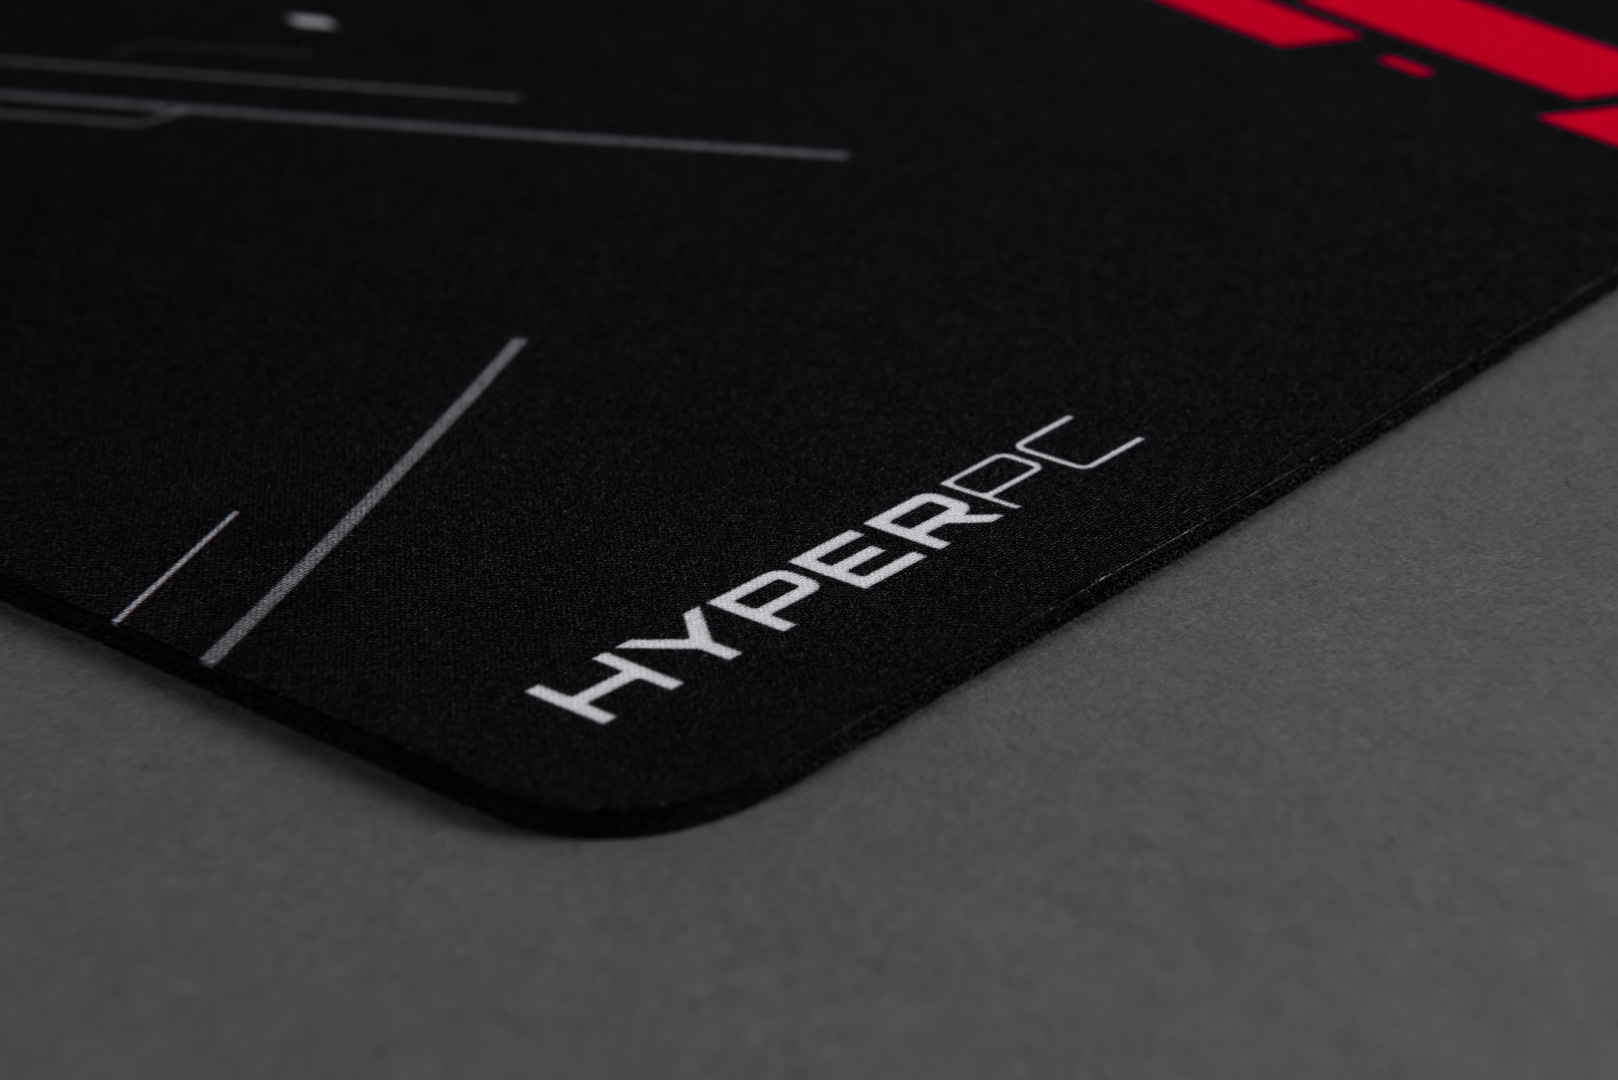 hyperpc mouse pad 07